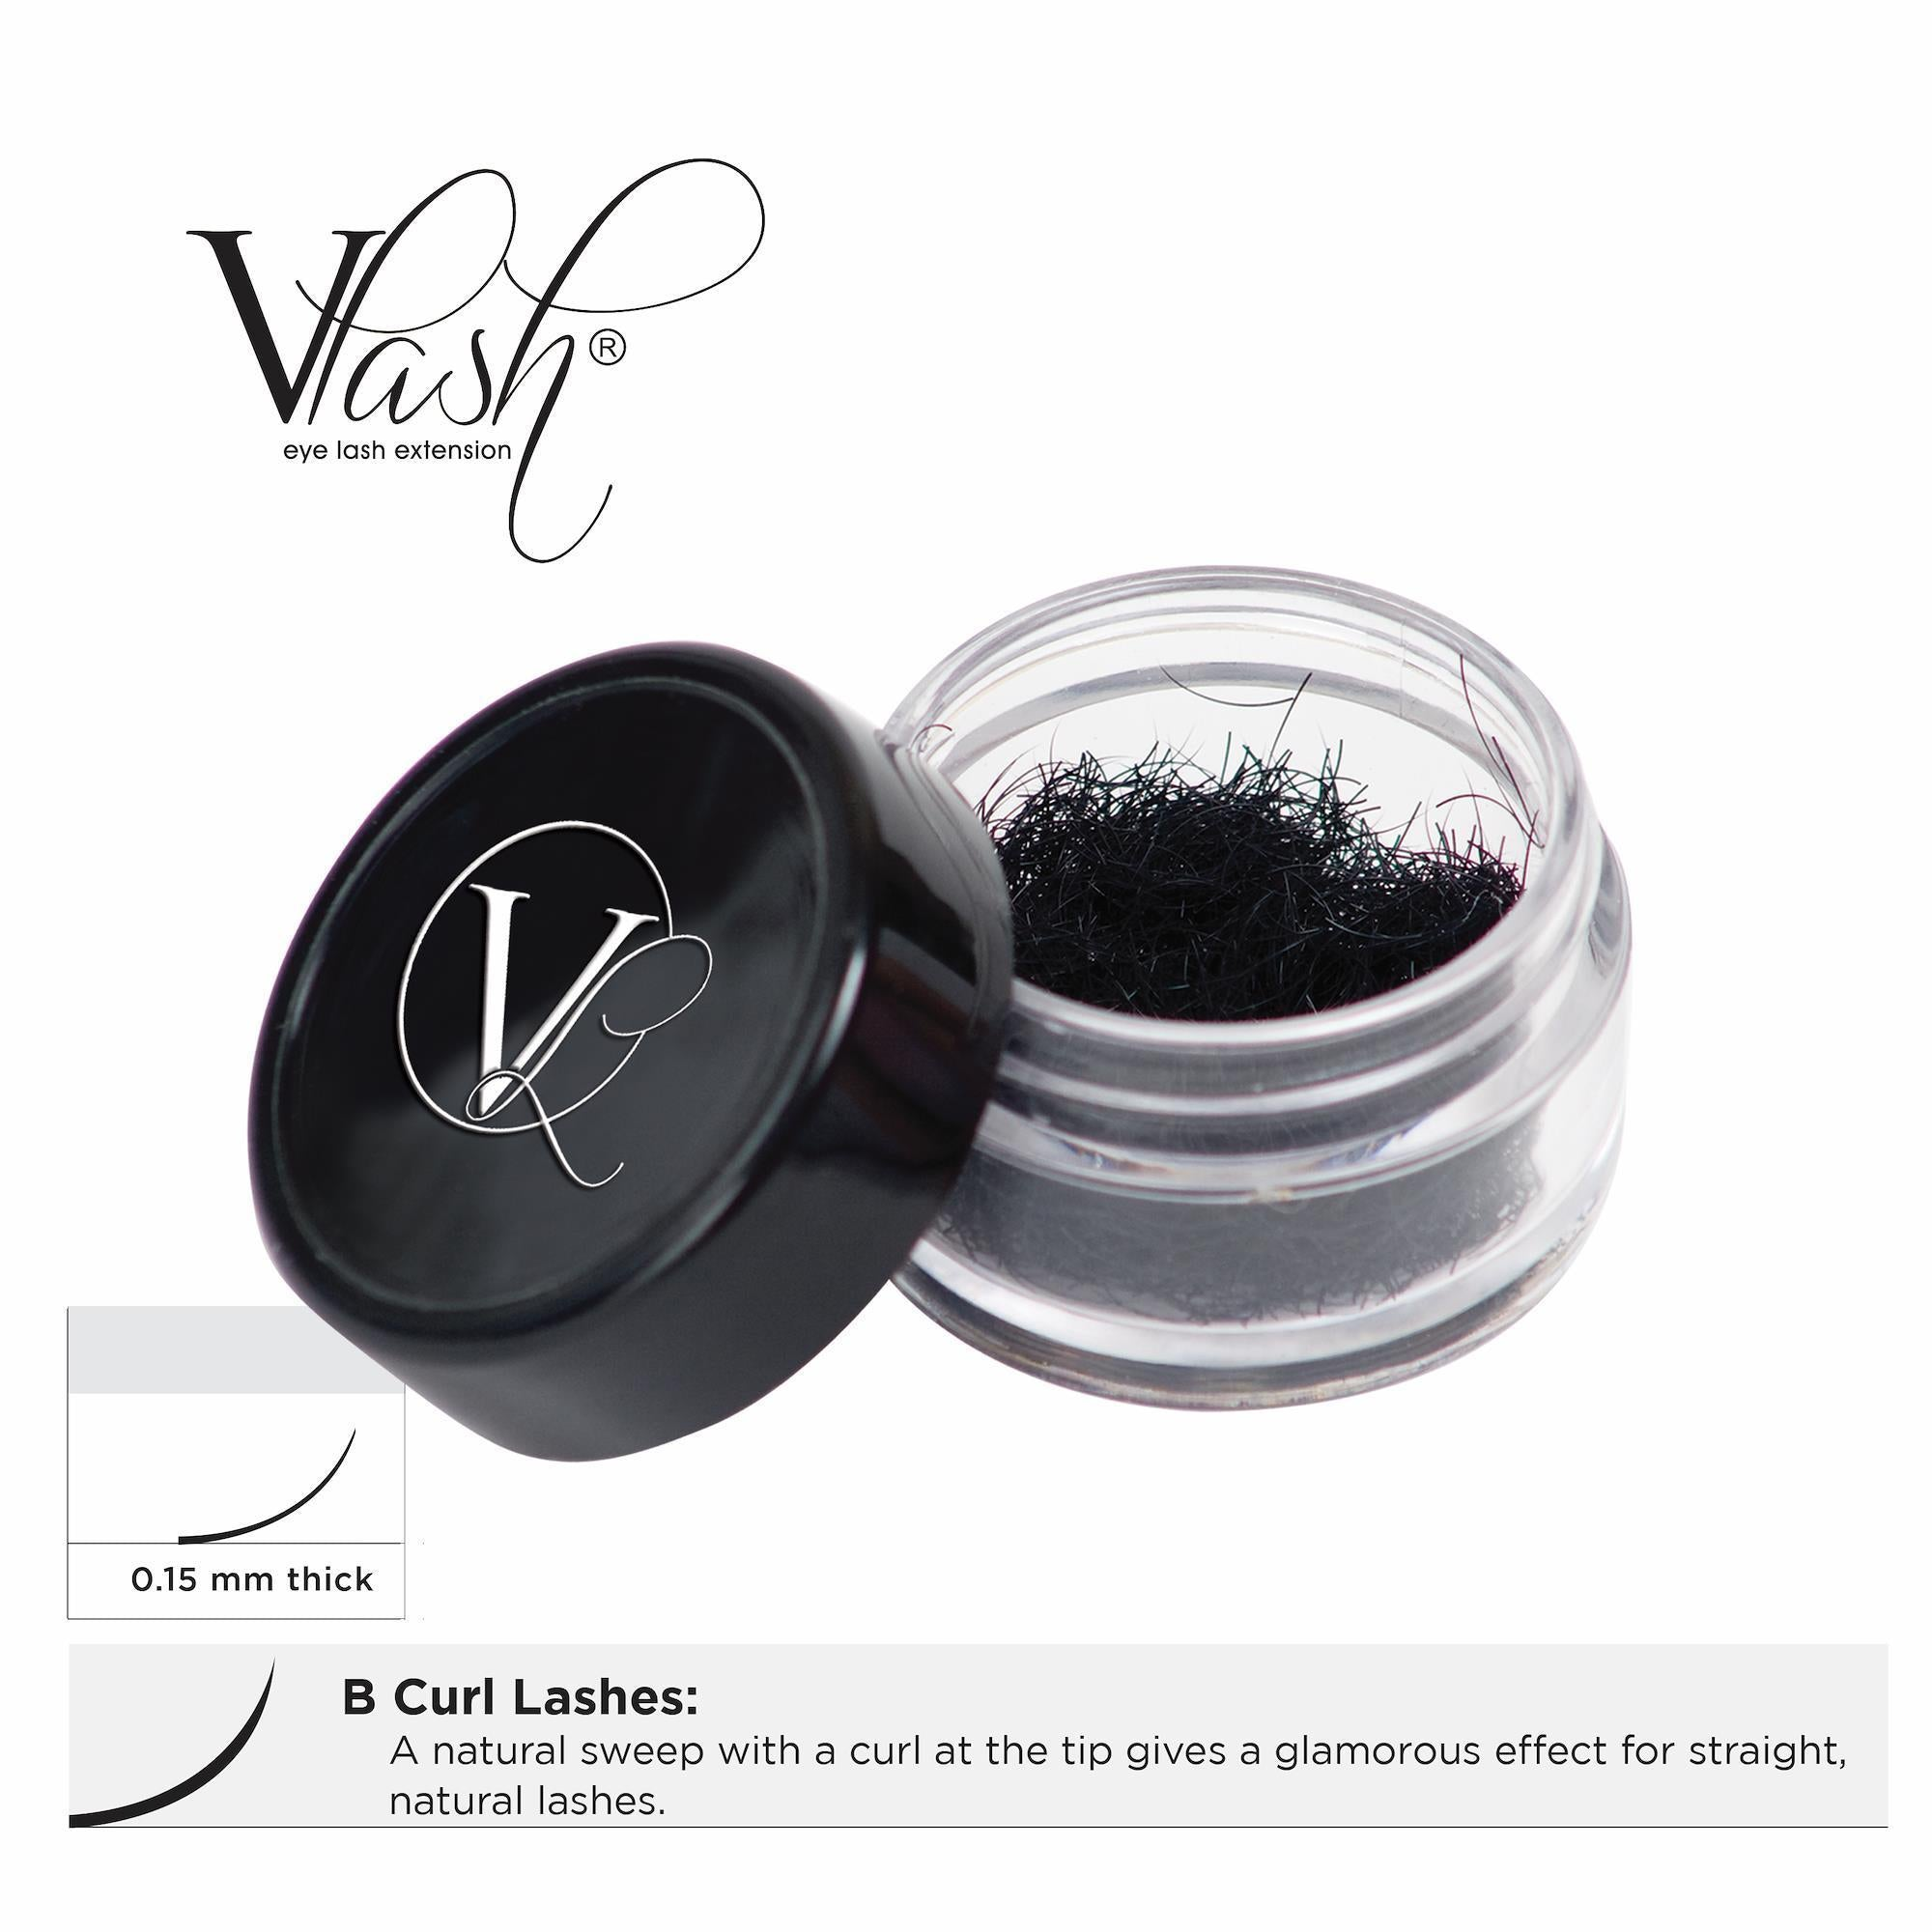 Lash Extensions, Strips, Acces 15mm VLash B Curl Jar Lashes / .15mm thick